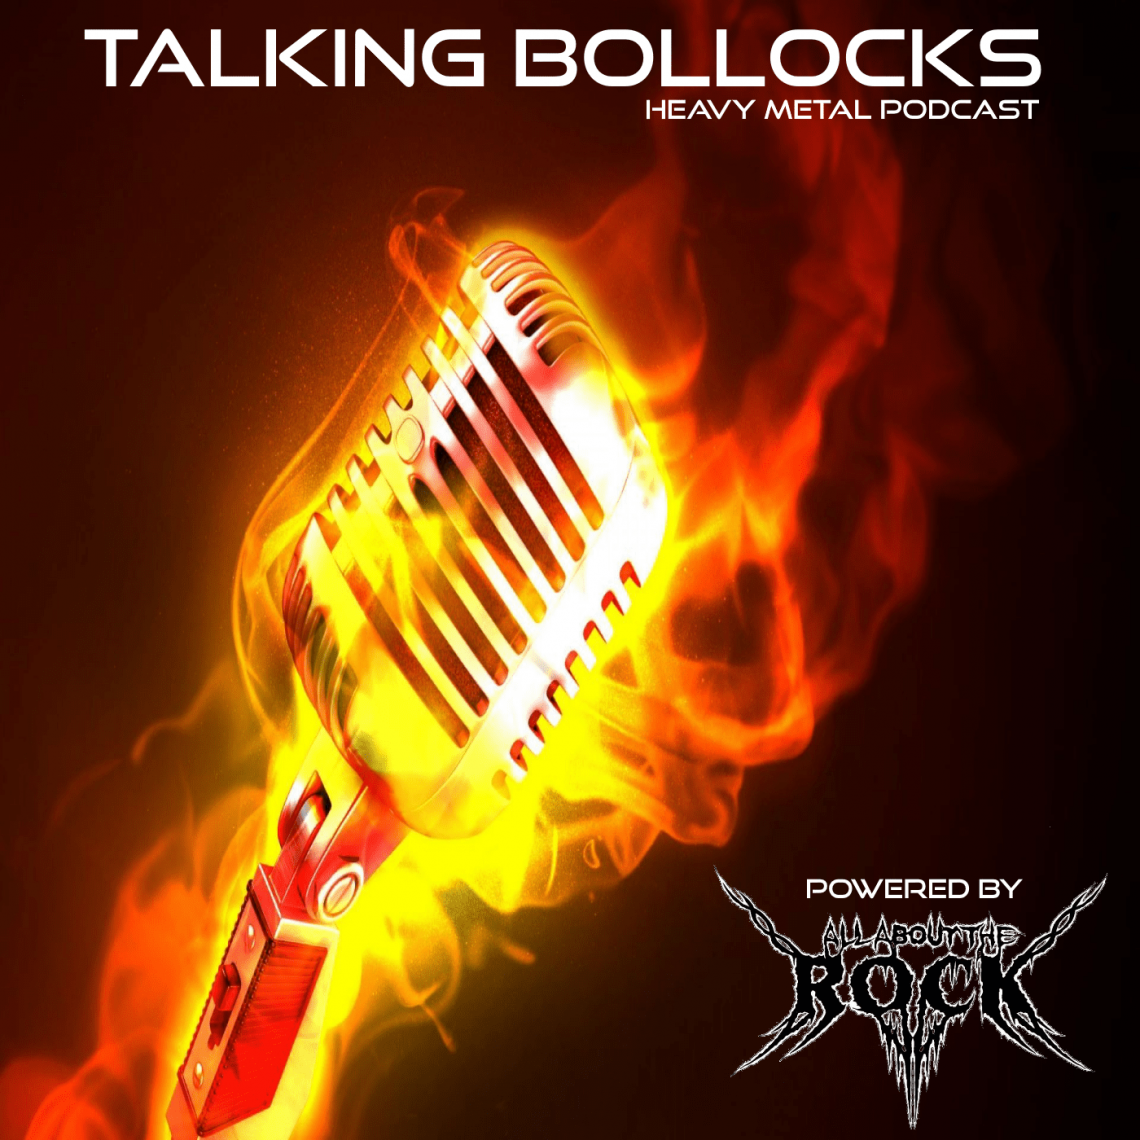 Bonus Podcast: The Bay Area Strikes Back Special With Gene Hoglan And Mark Osegueda